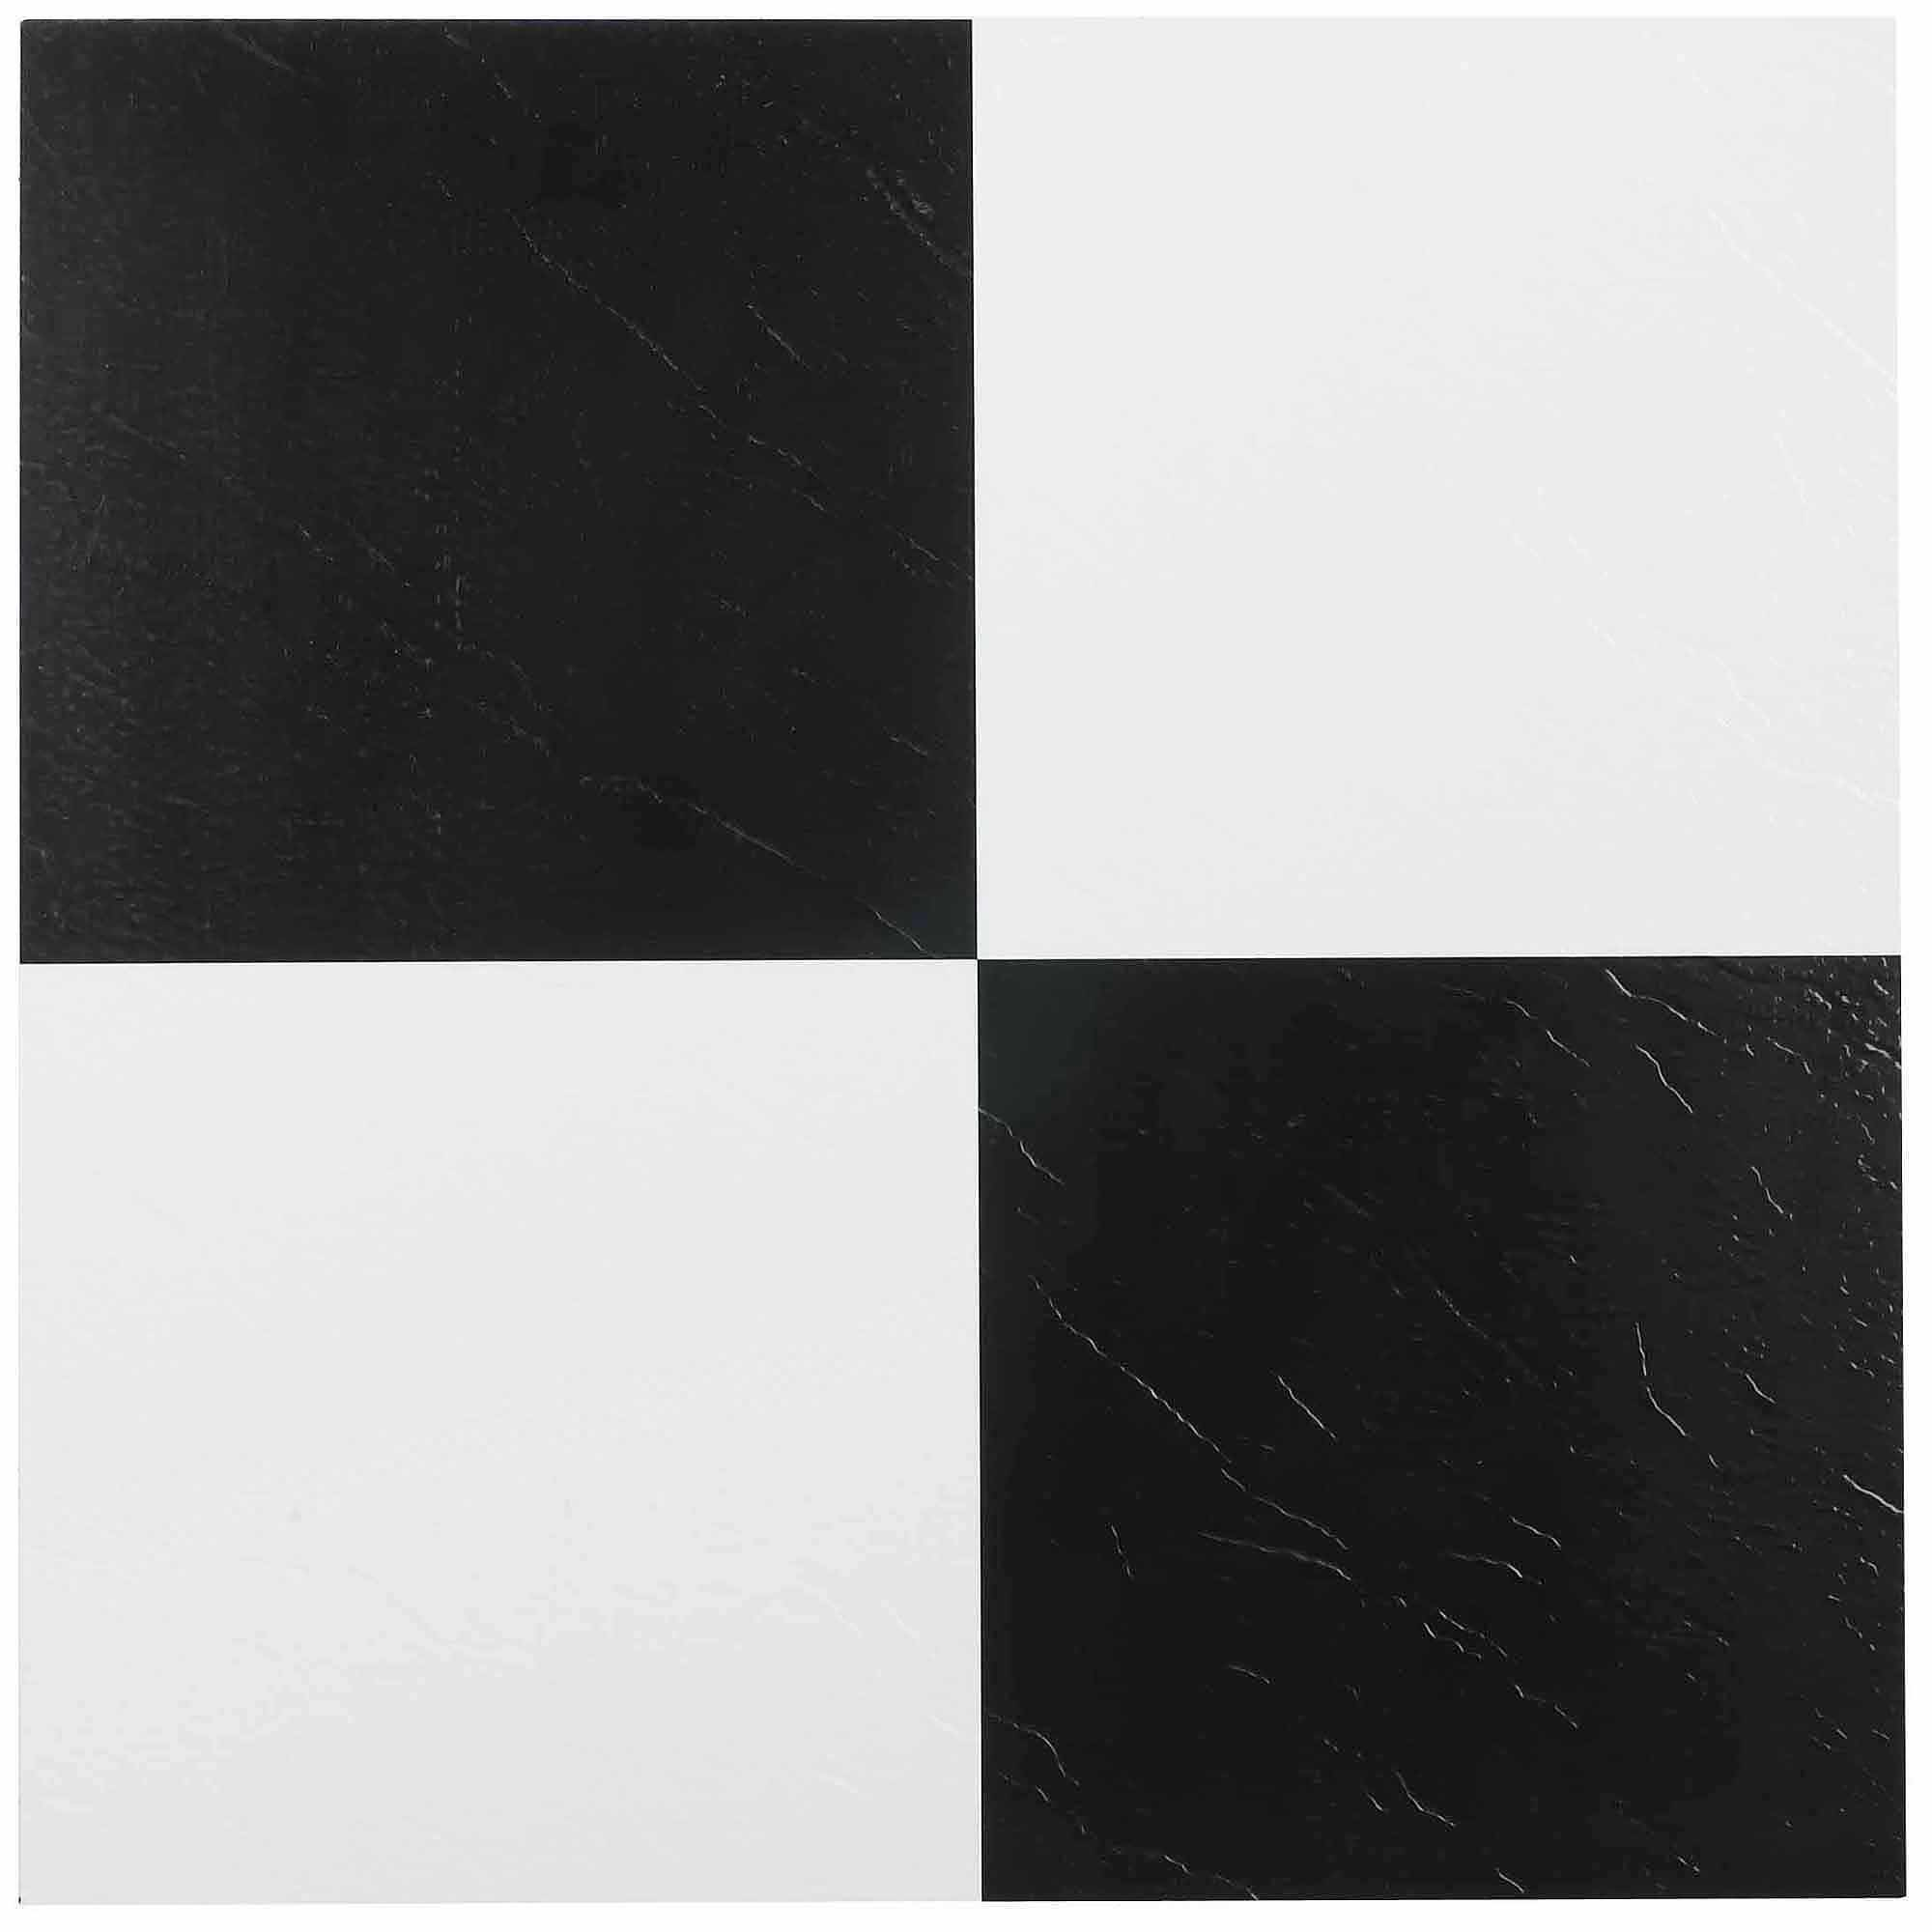 Black And White Checkerboard Wallpaper (47+ Images